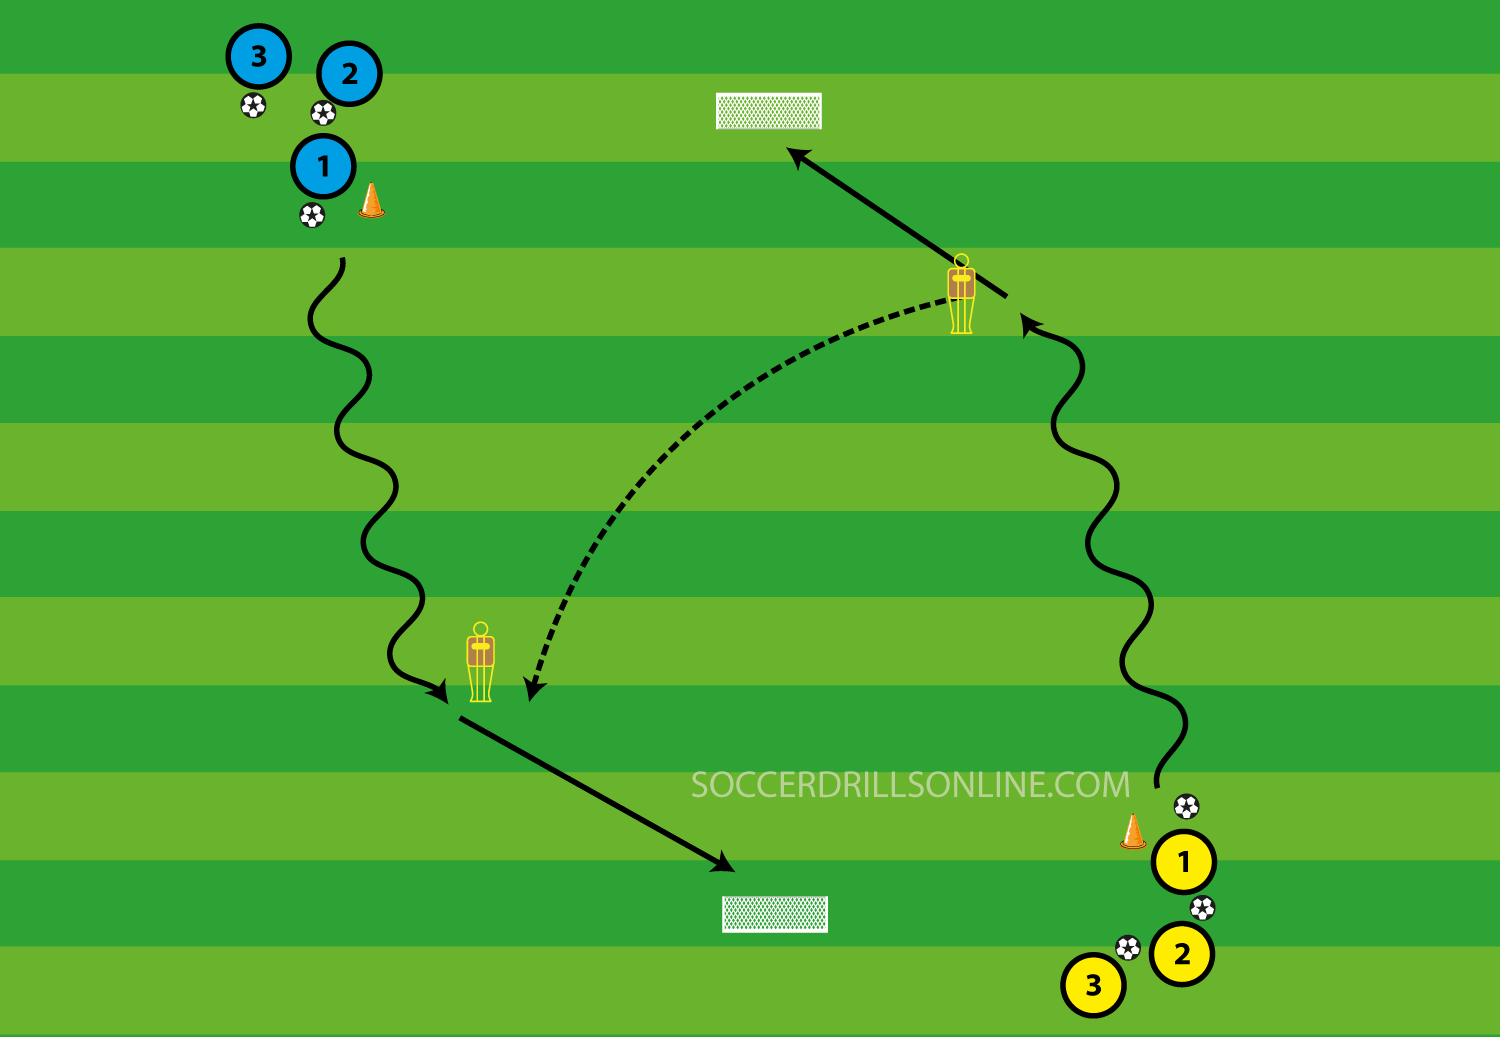 Transition game 1vs1 - Goals facing each other - with dummy